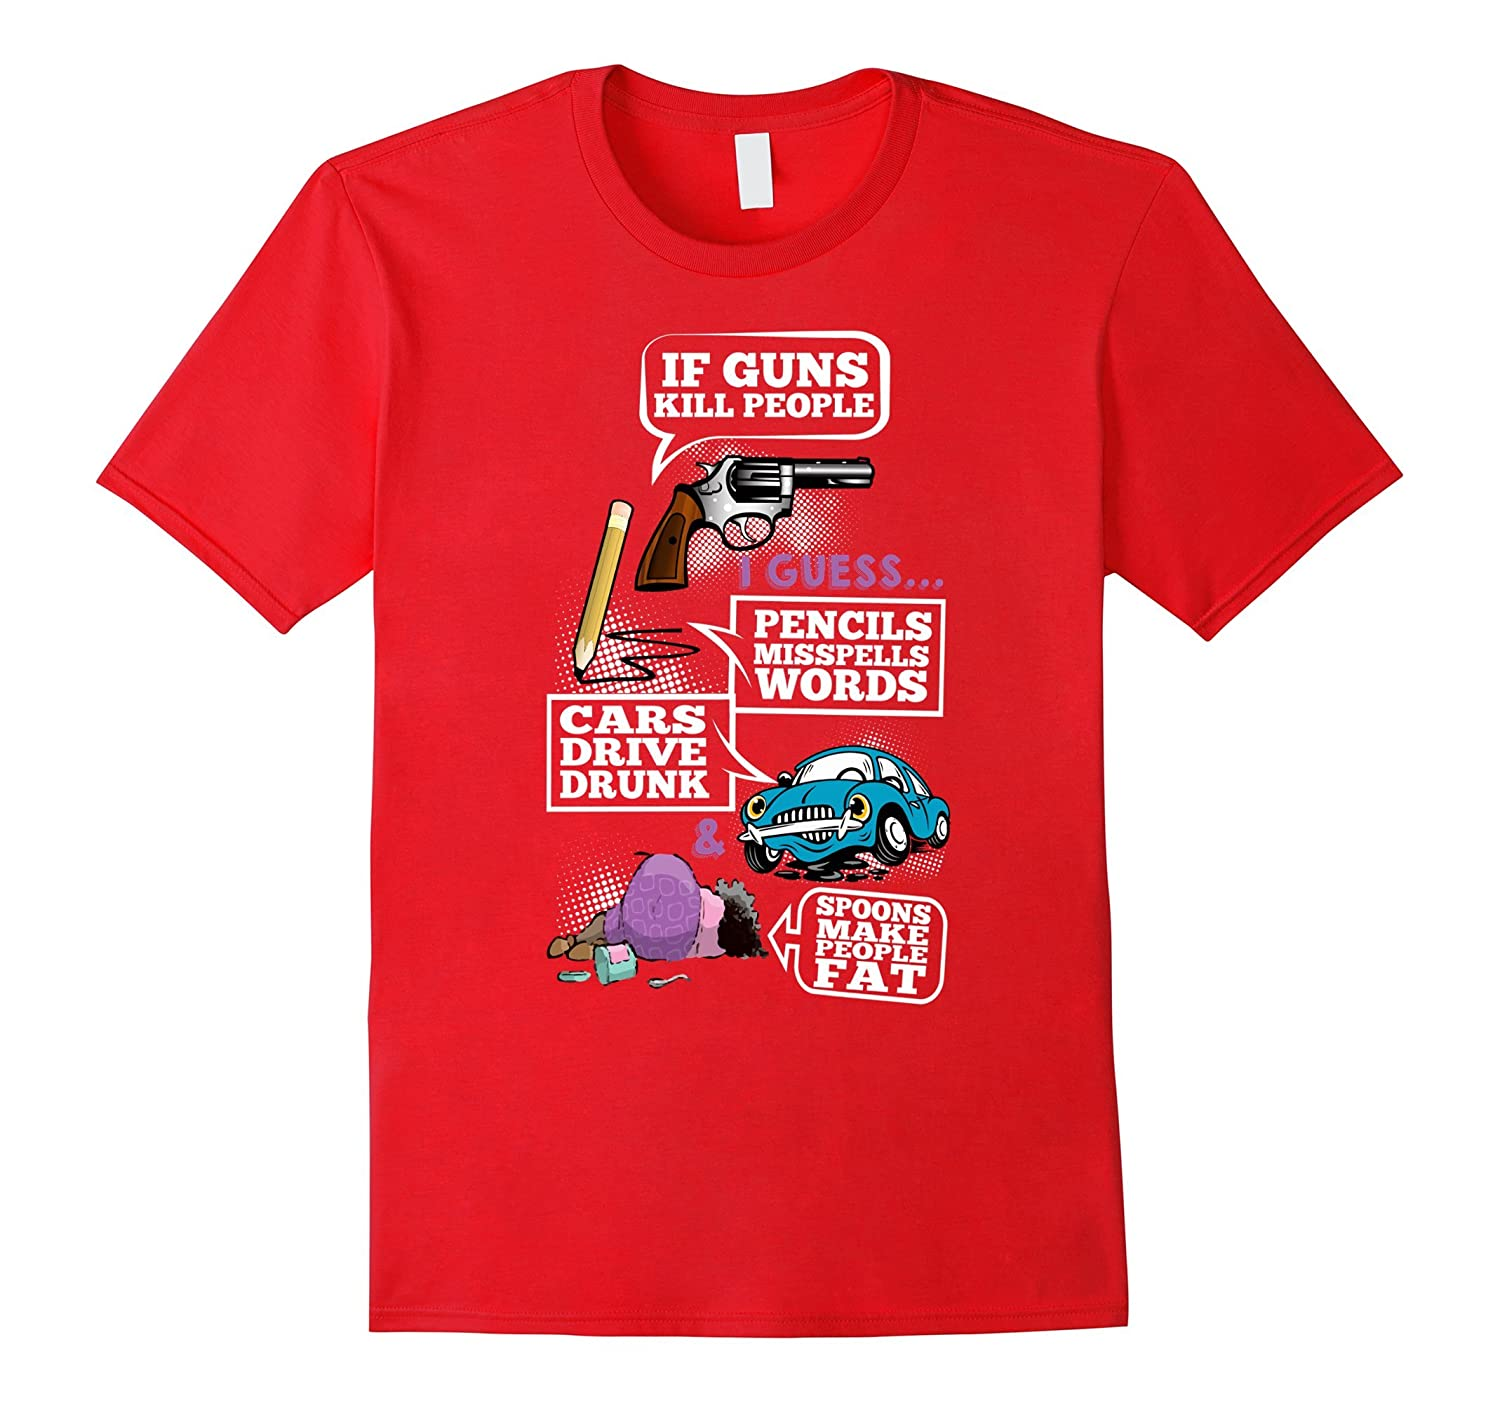 2nd amendment t shirt If Guns Kill People...-CL